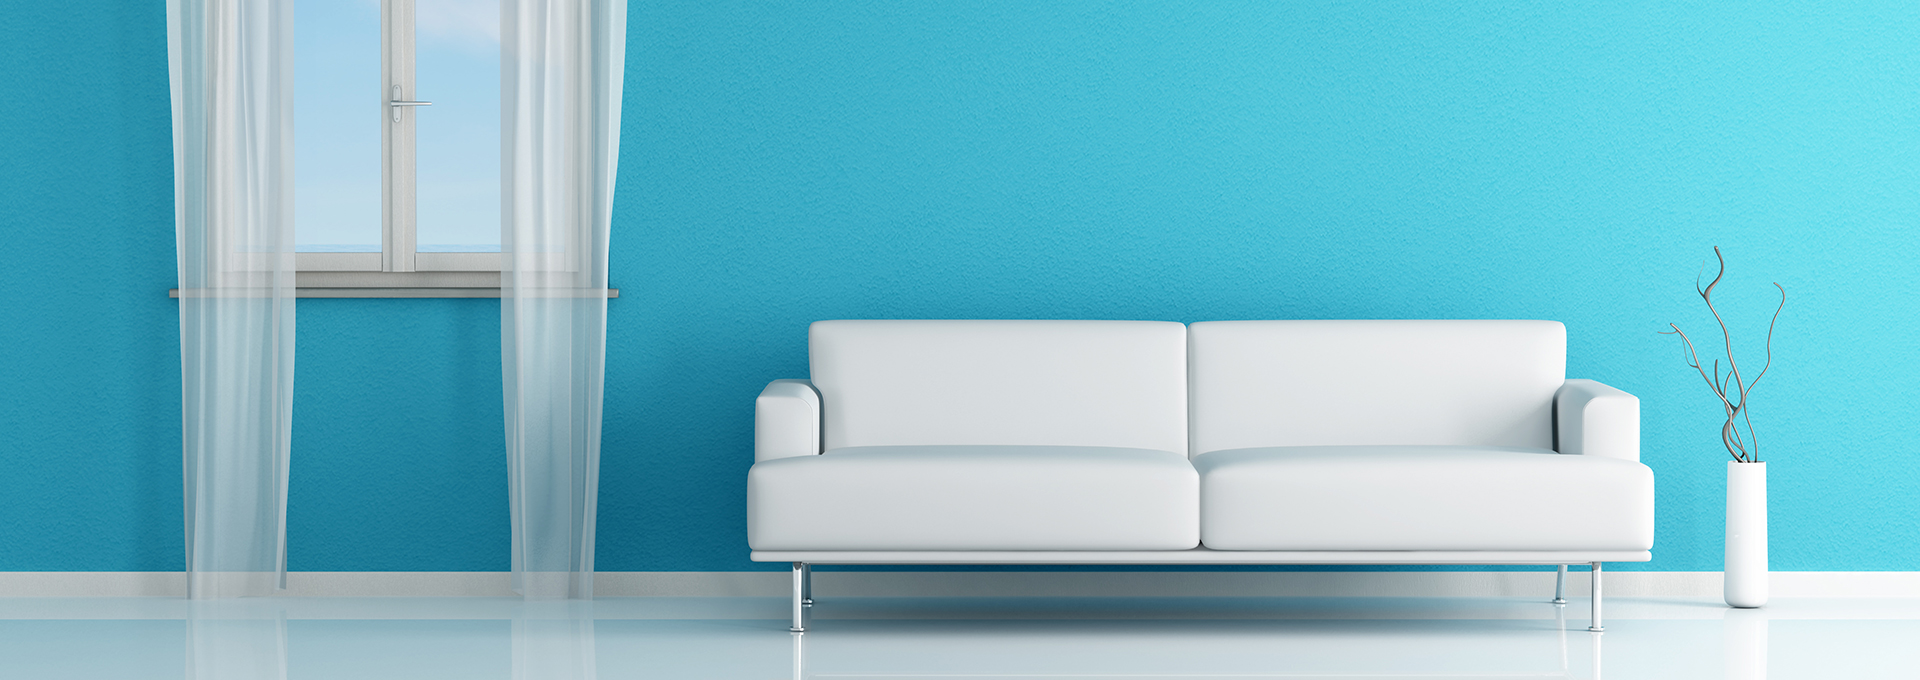 A white modern couch sits next to a teal blue wall with a white vase and white window - Design Accounting Solutions